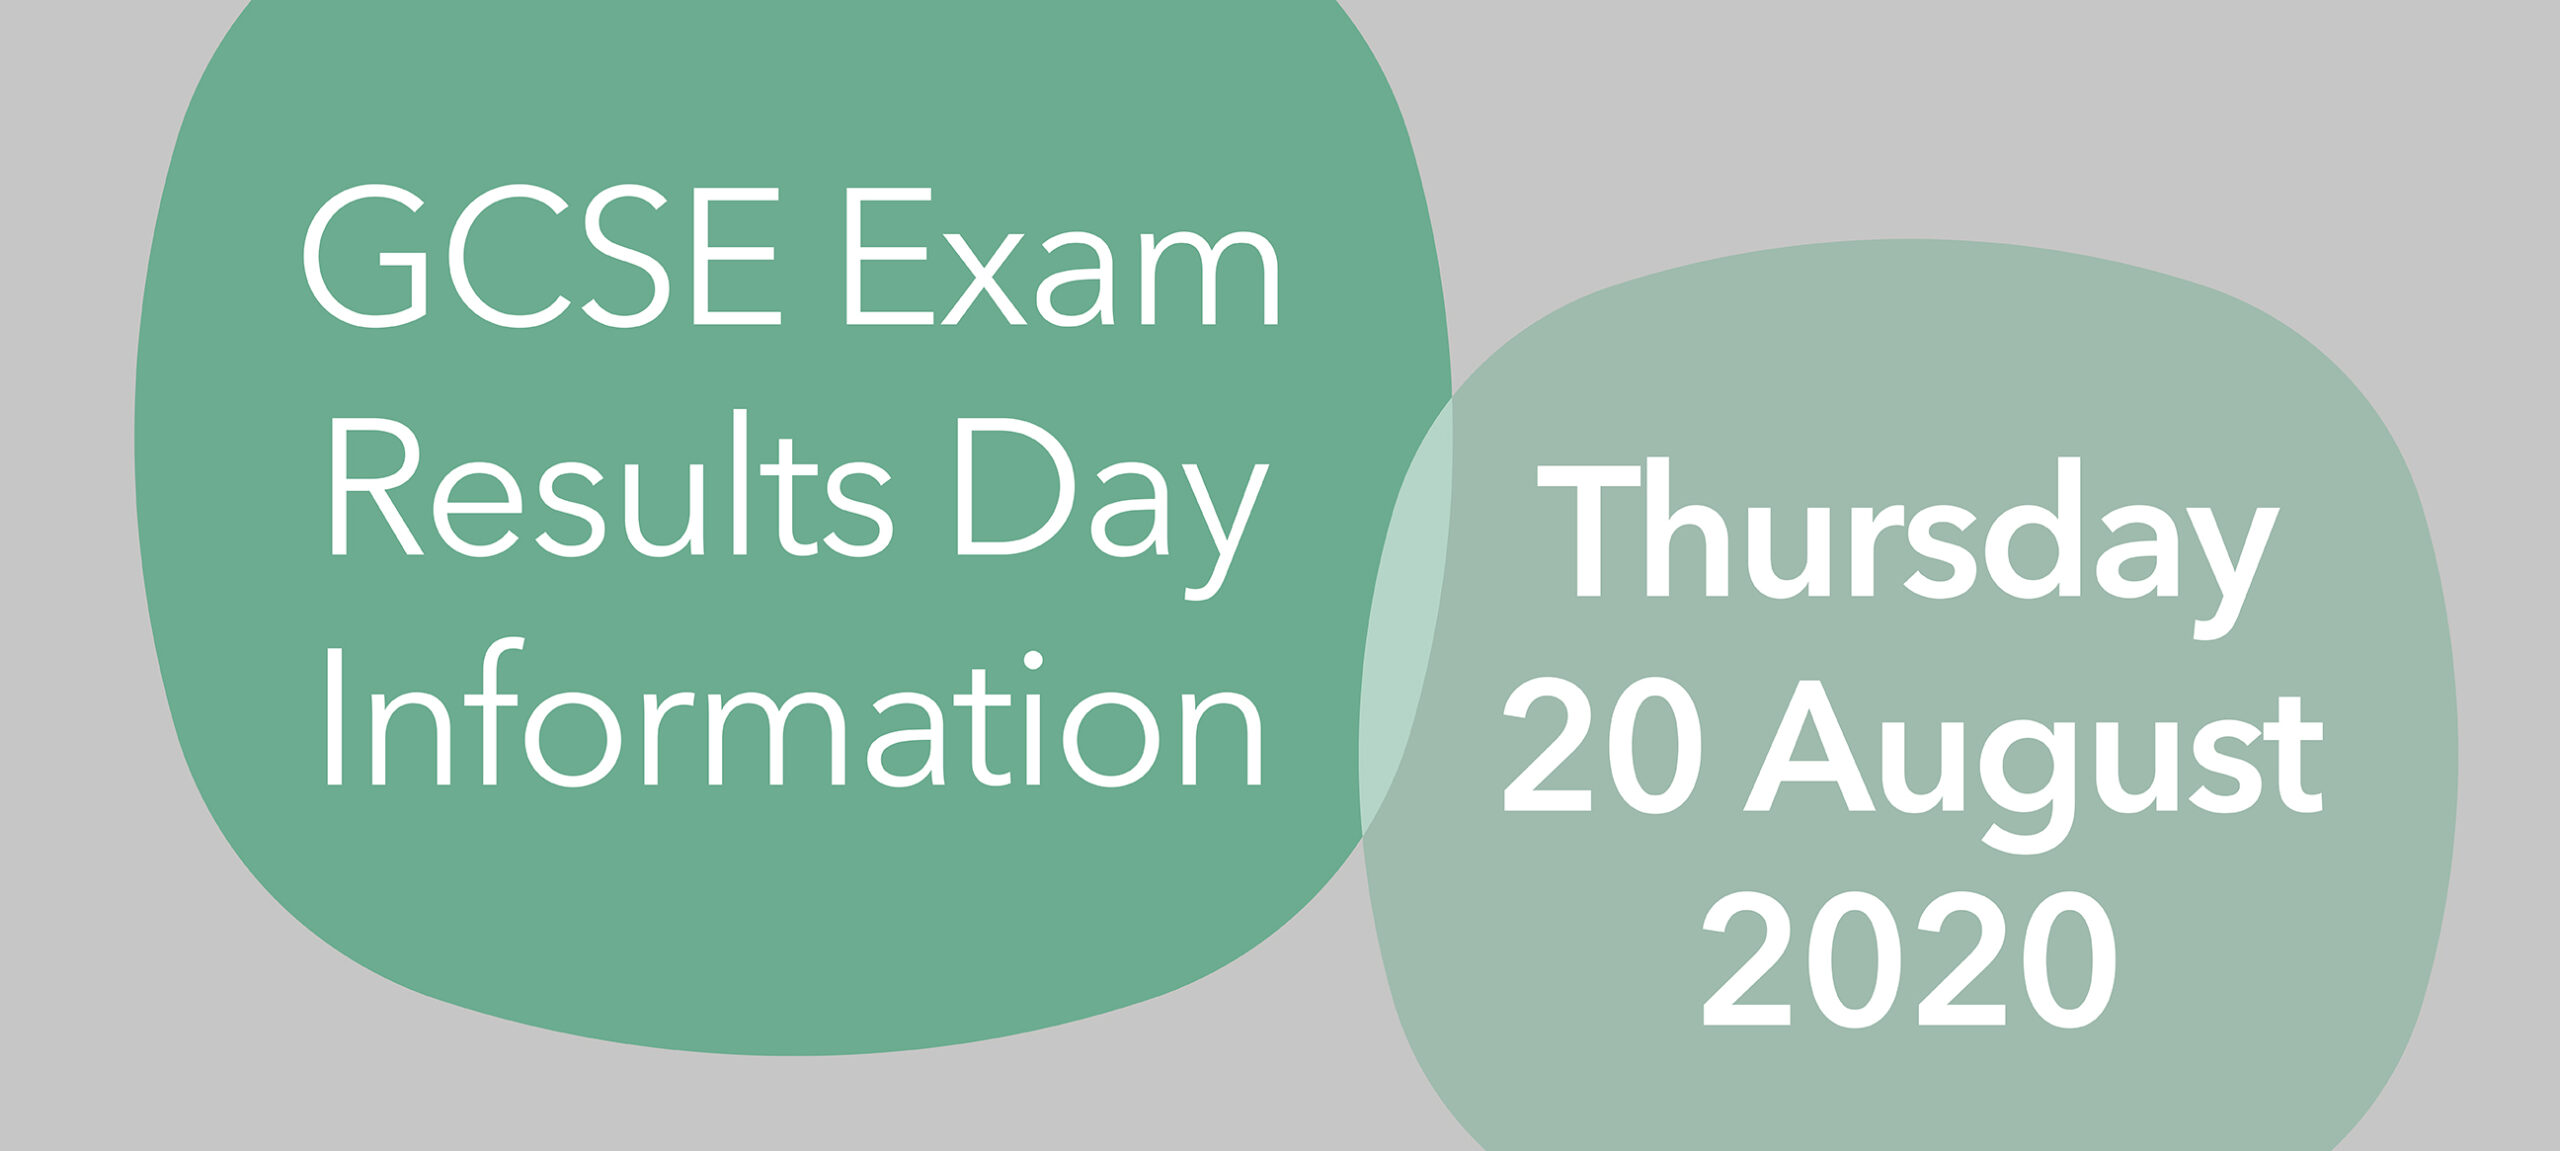 GCSE Exam Results Day, Thursday 20 August 2020